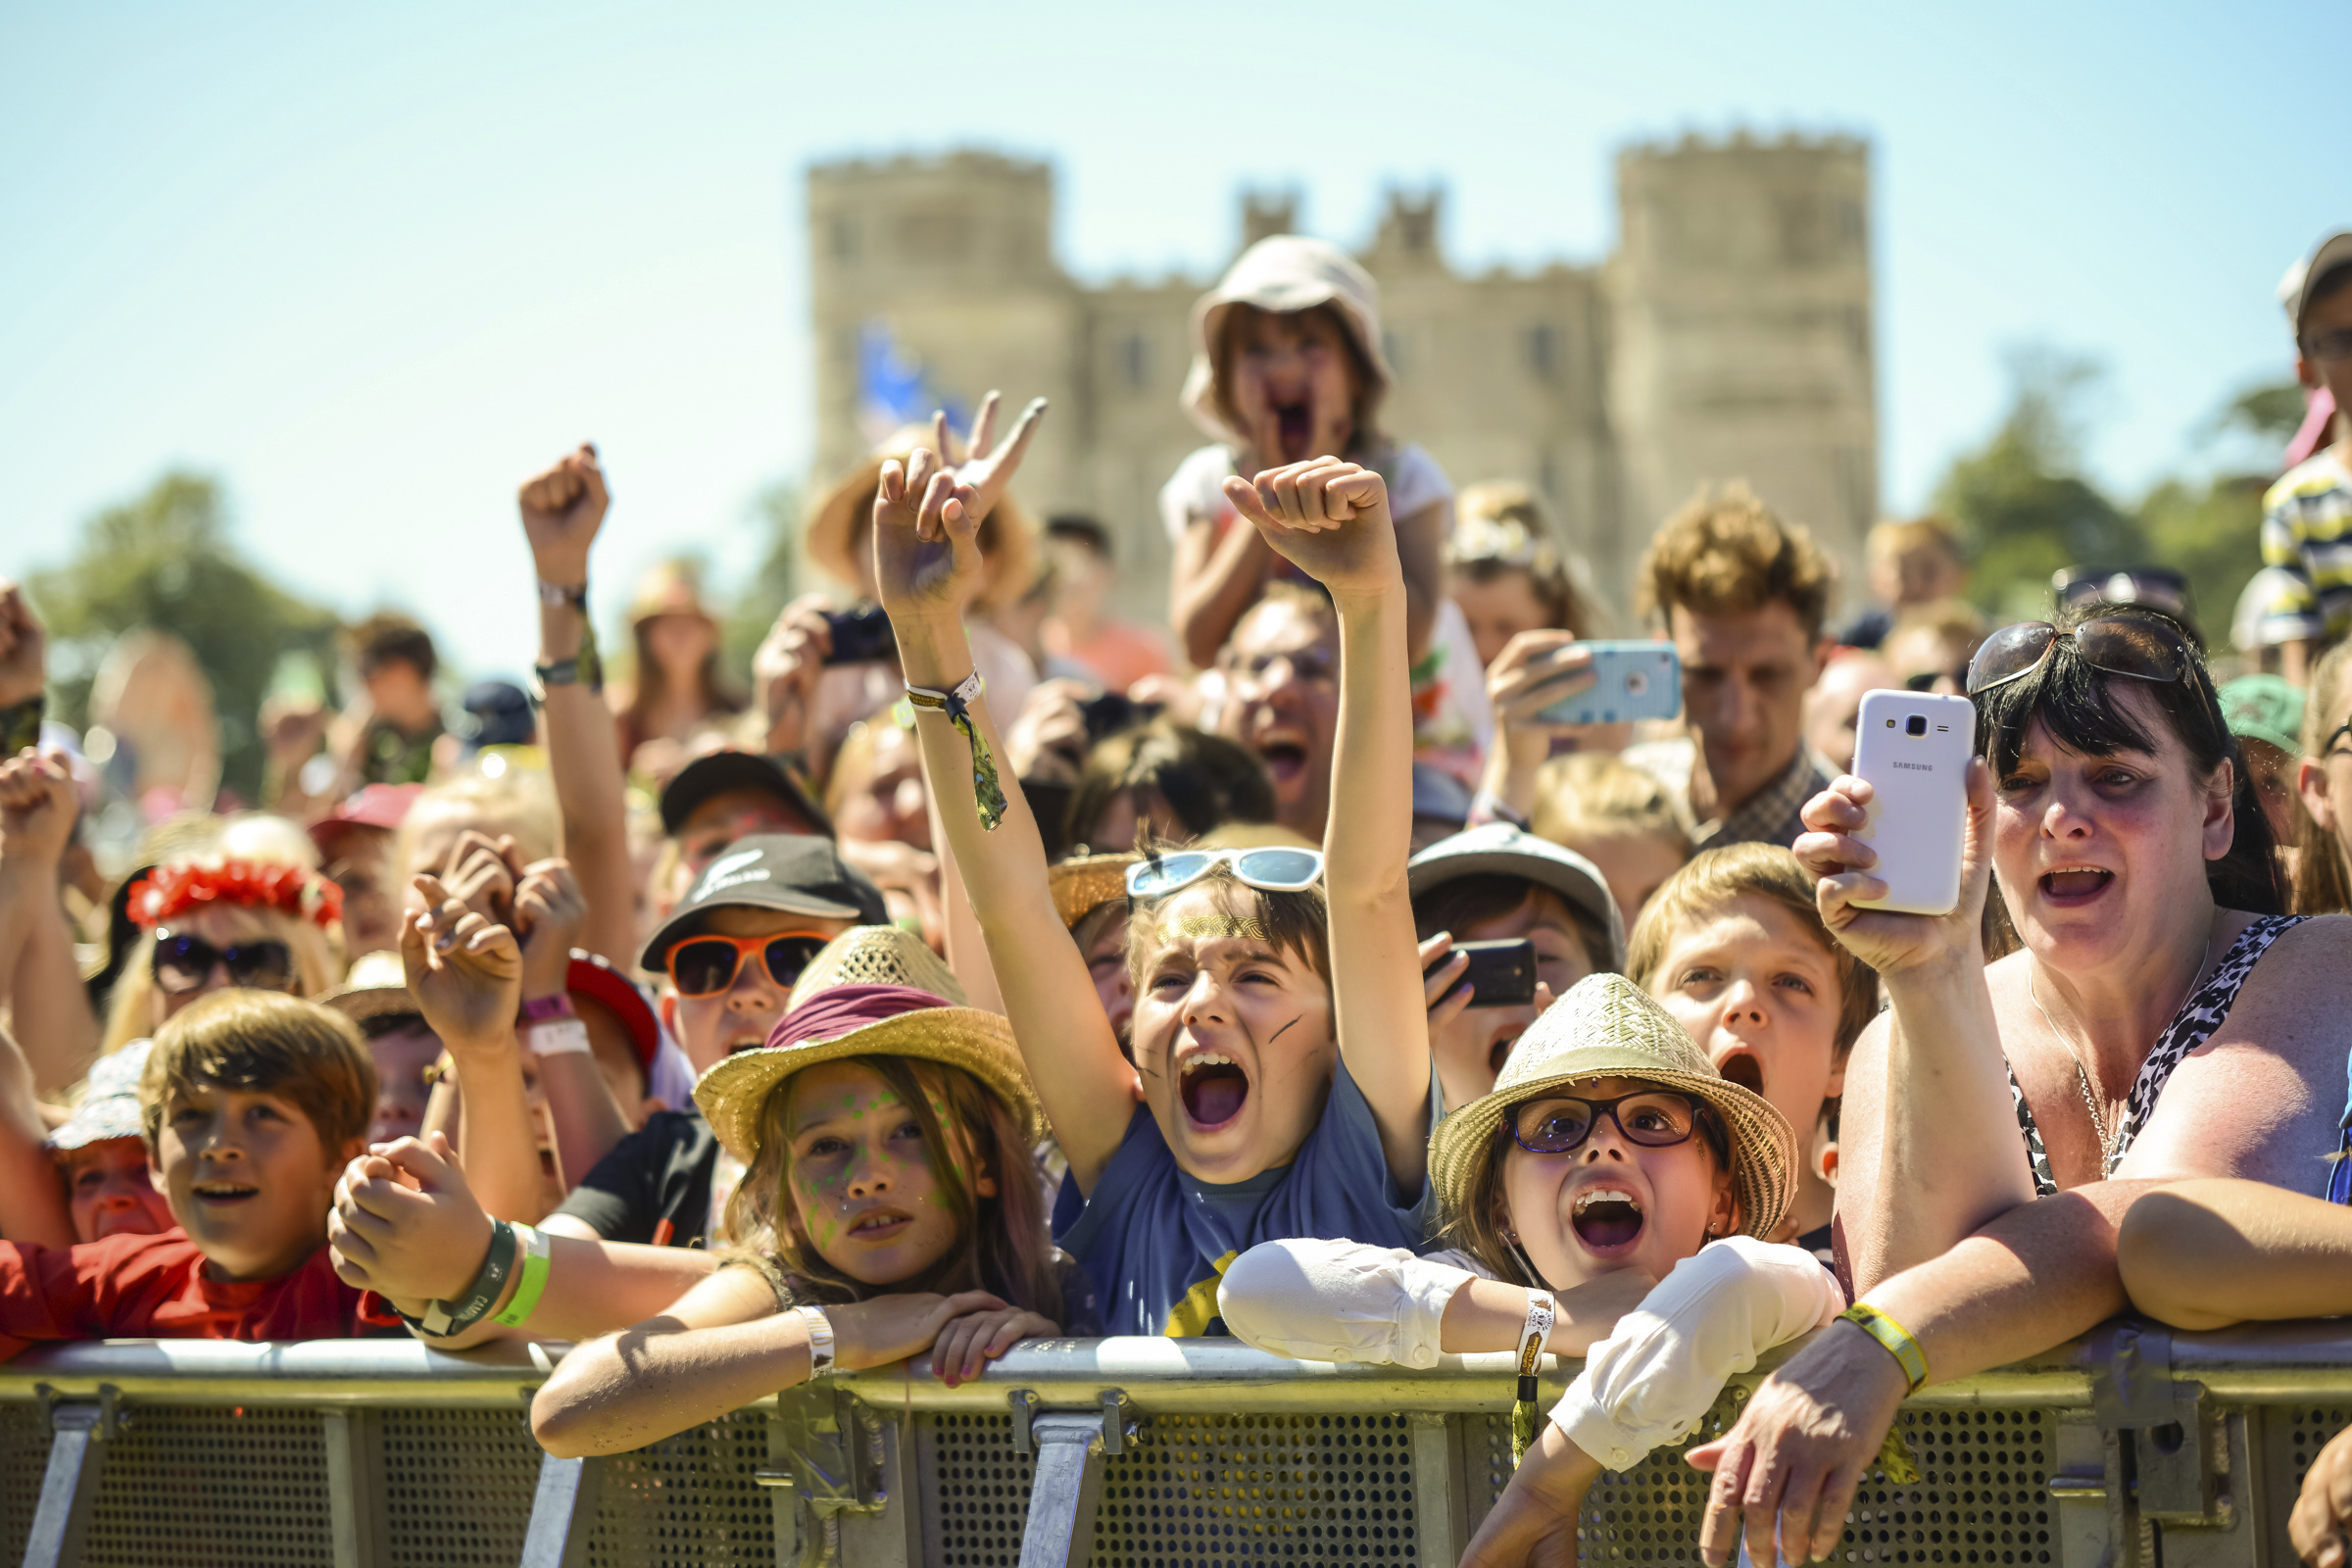 Kids at Camp Bestival